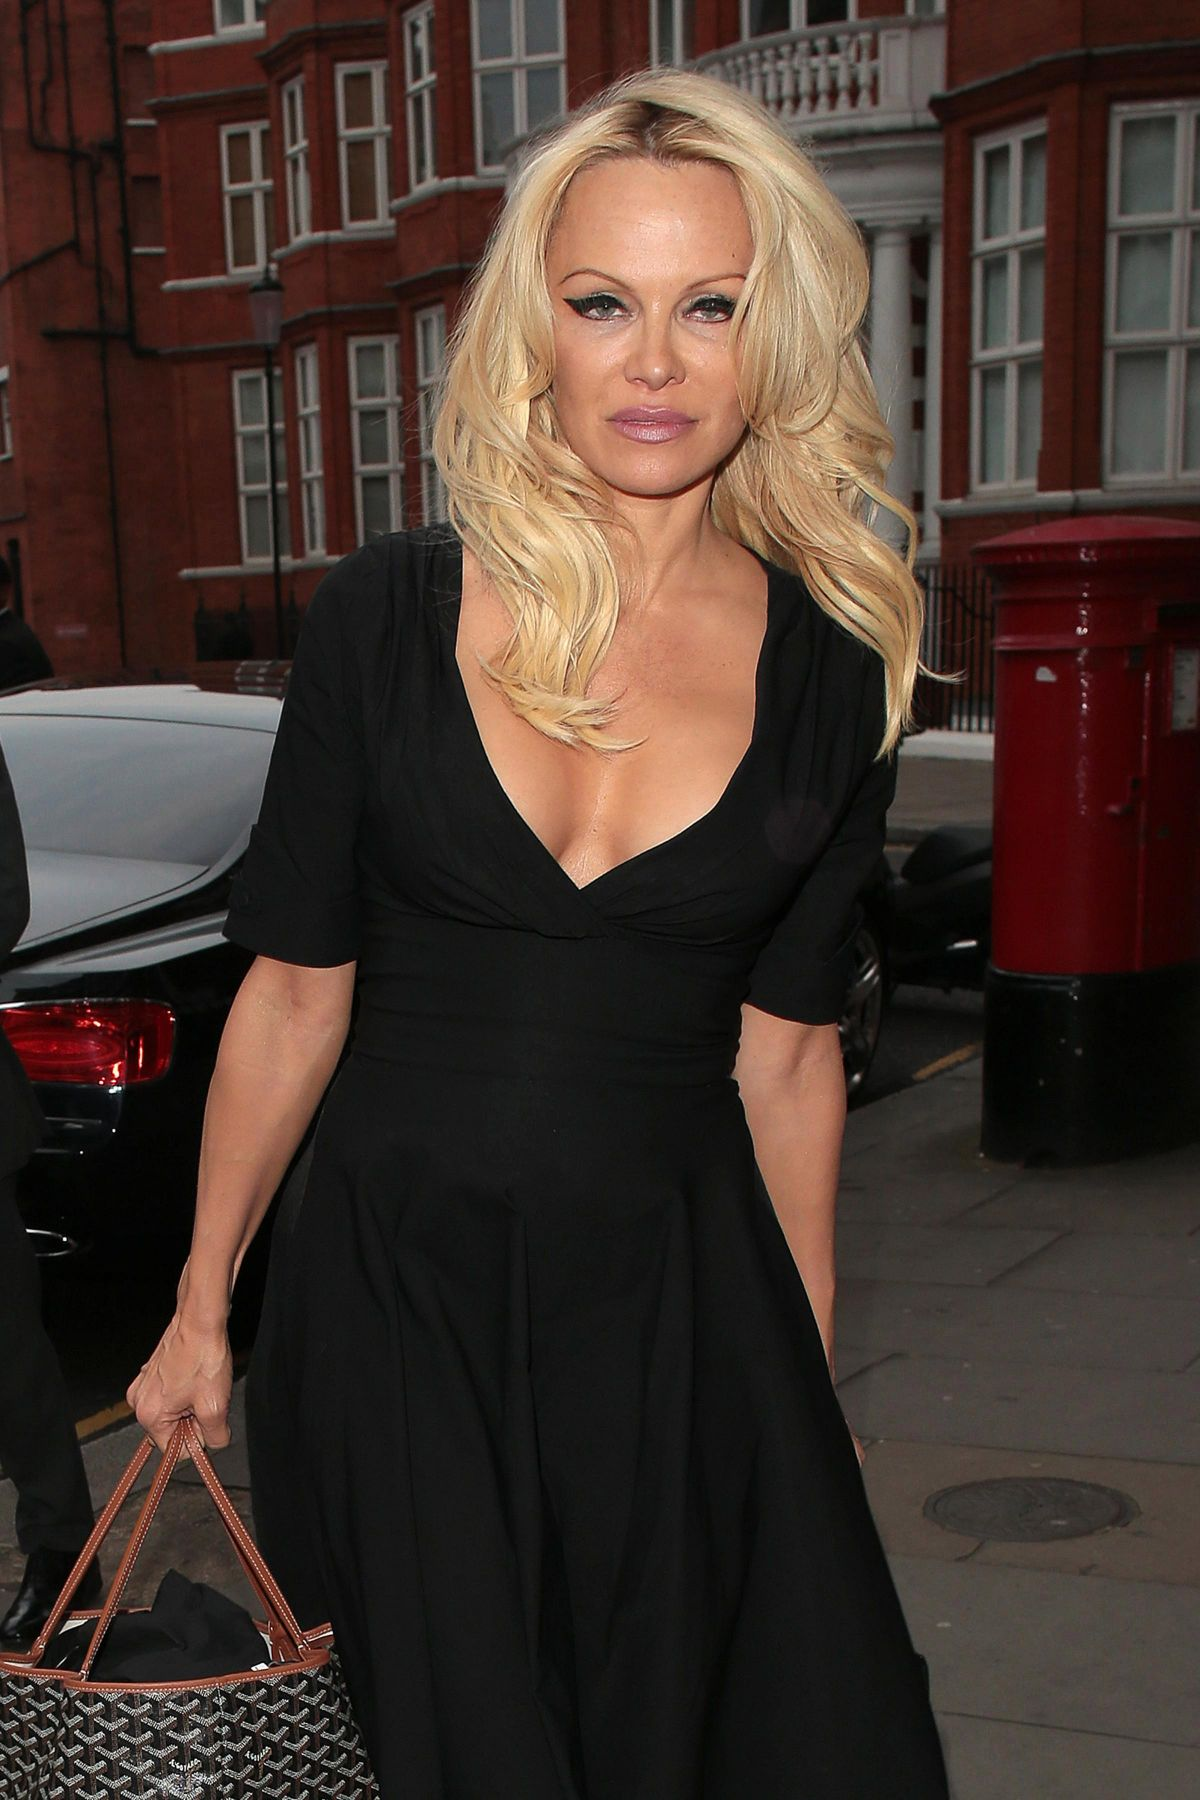 Pamela Anderson photo gallery - 1040 high quality pics of ... Pamela Anderson